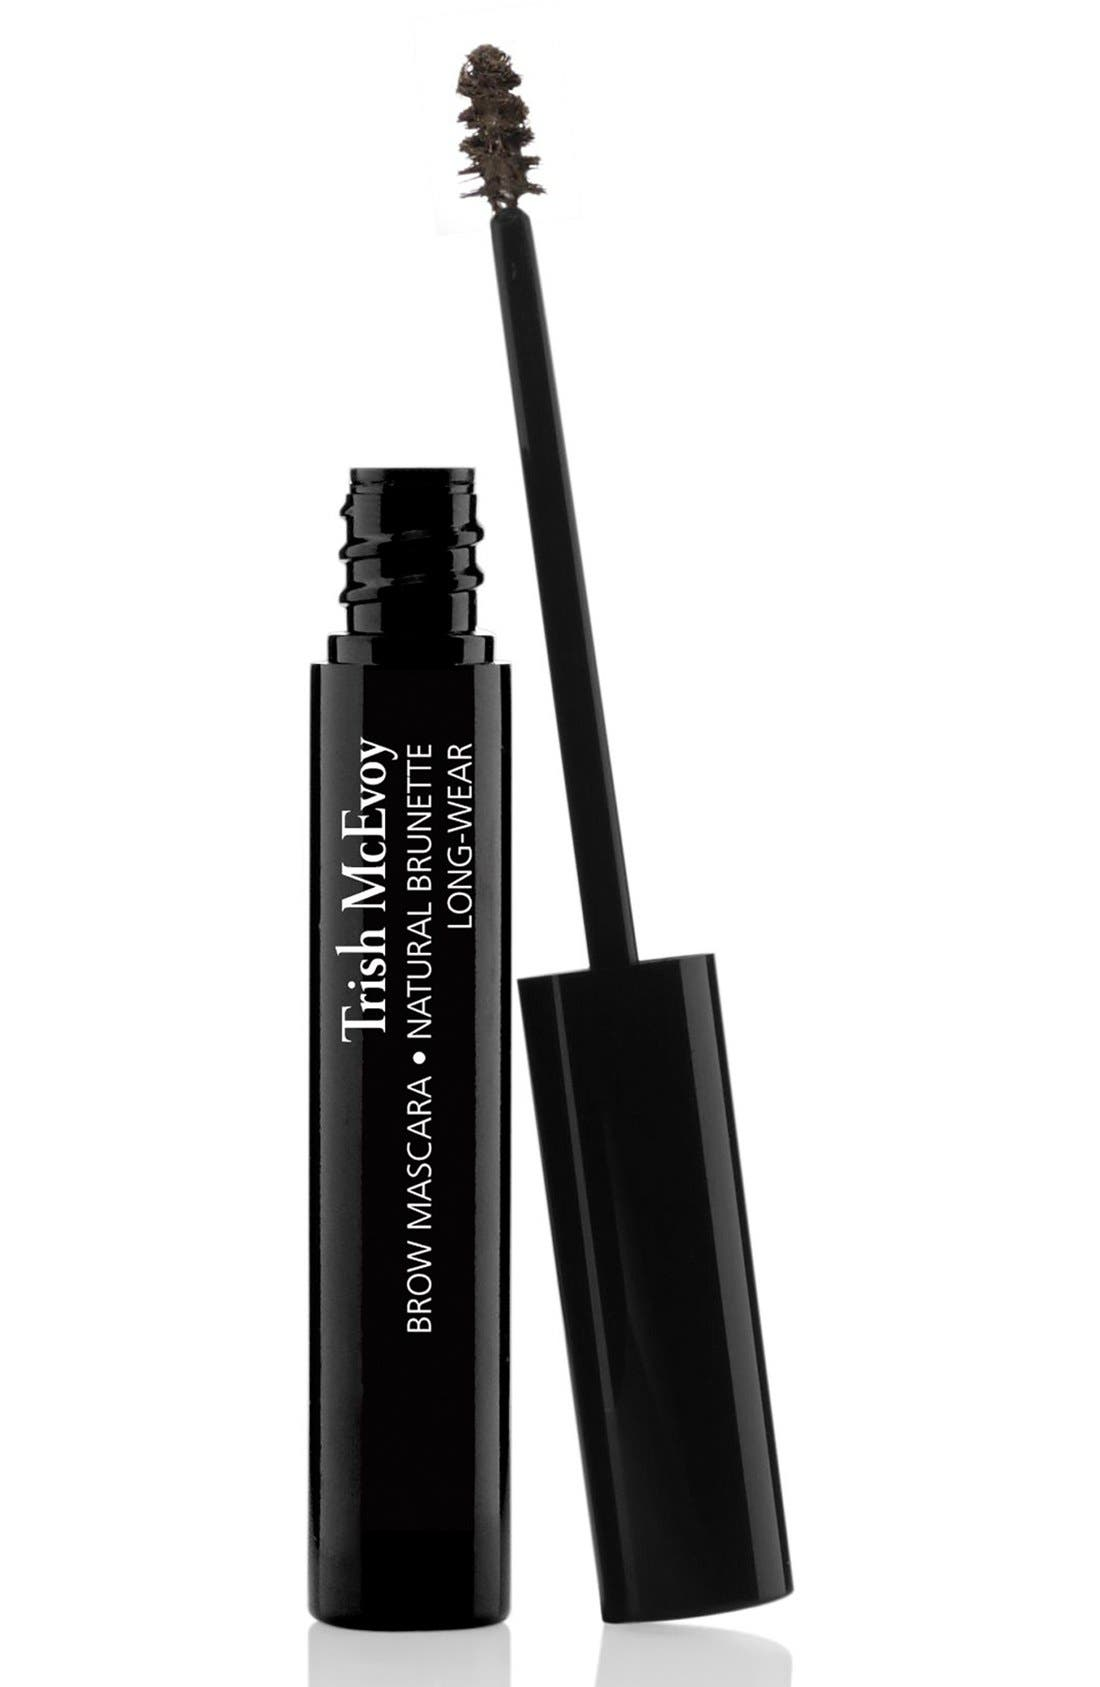 Trish McEvoy Brow Mascara